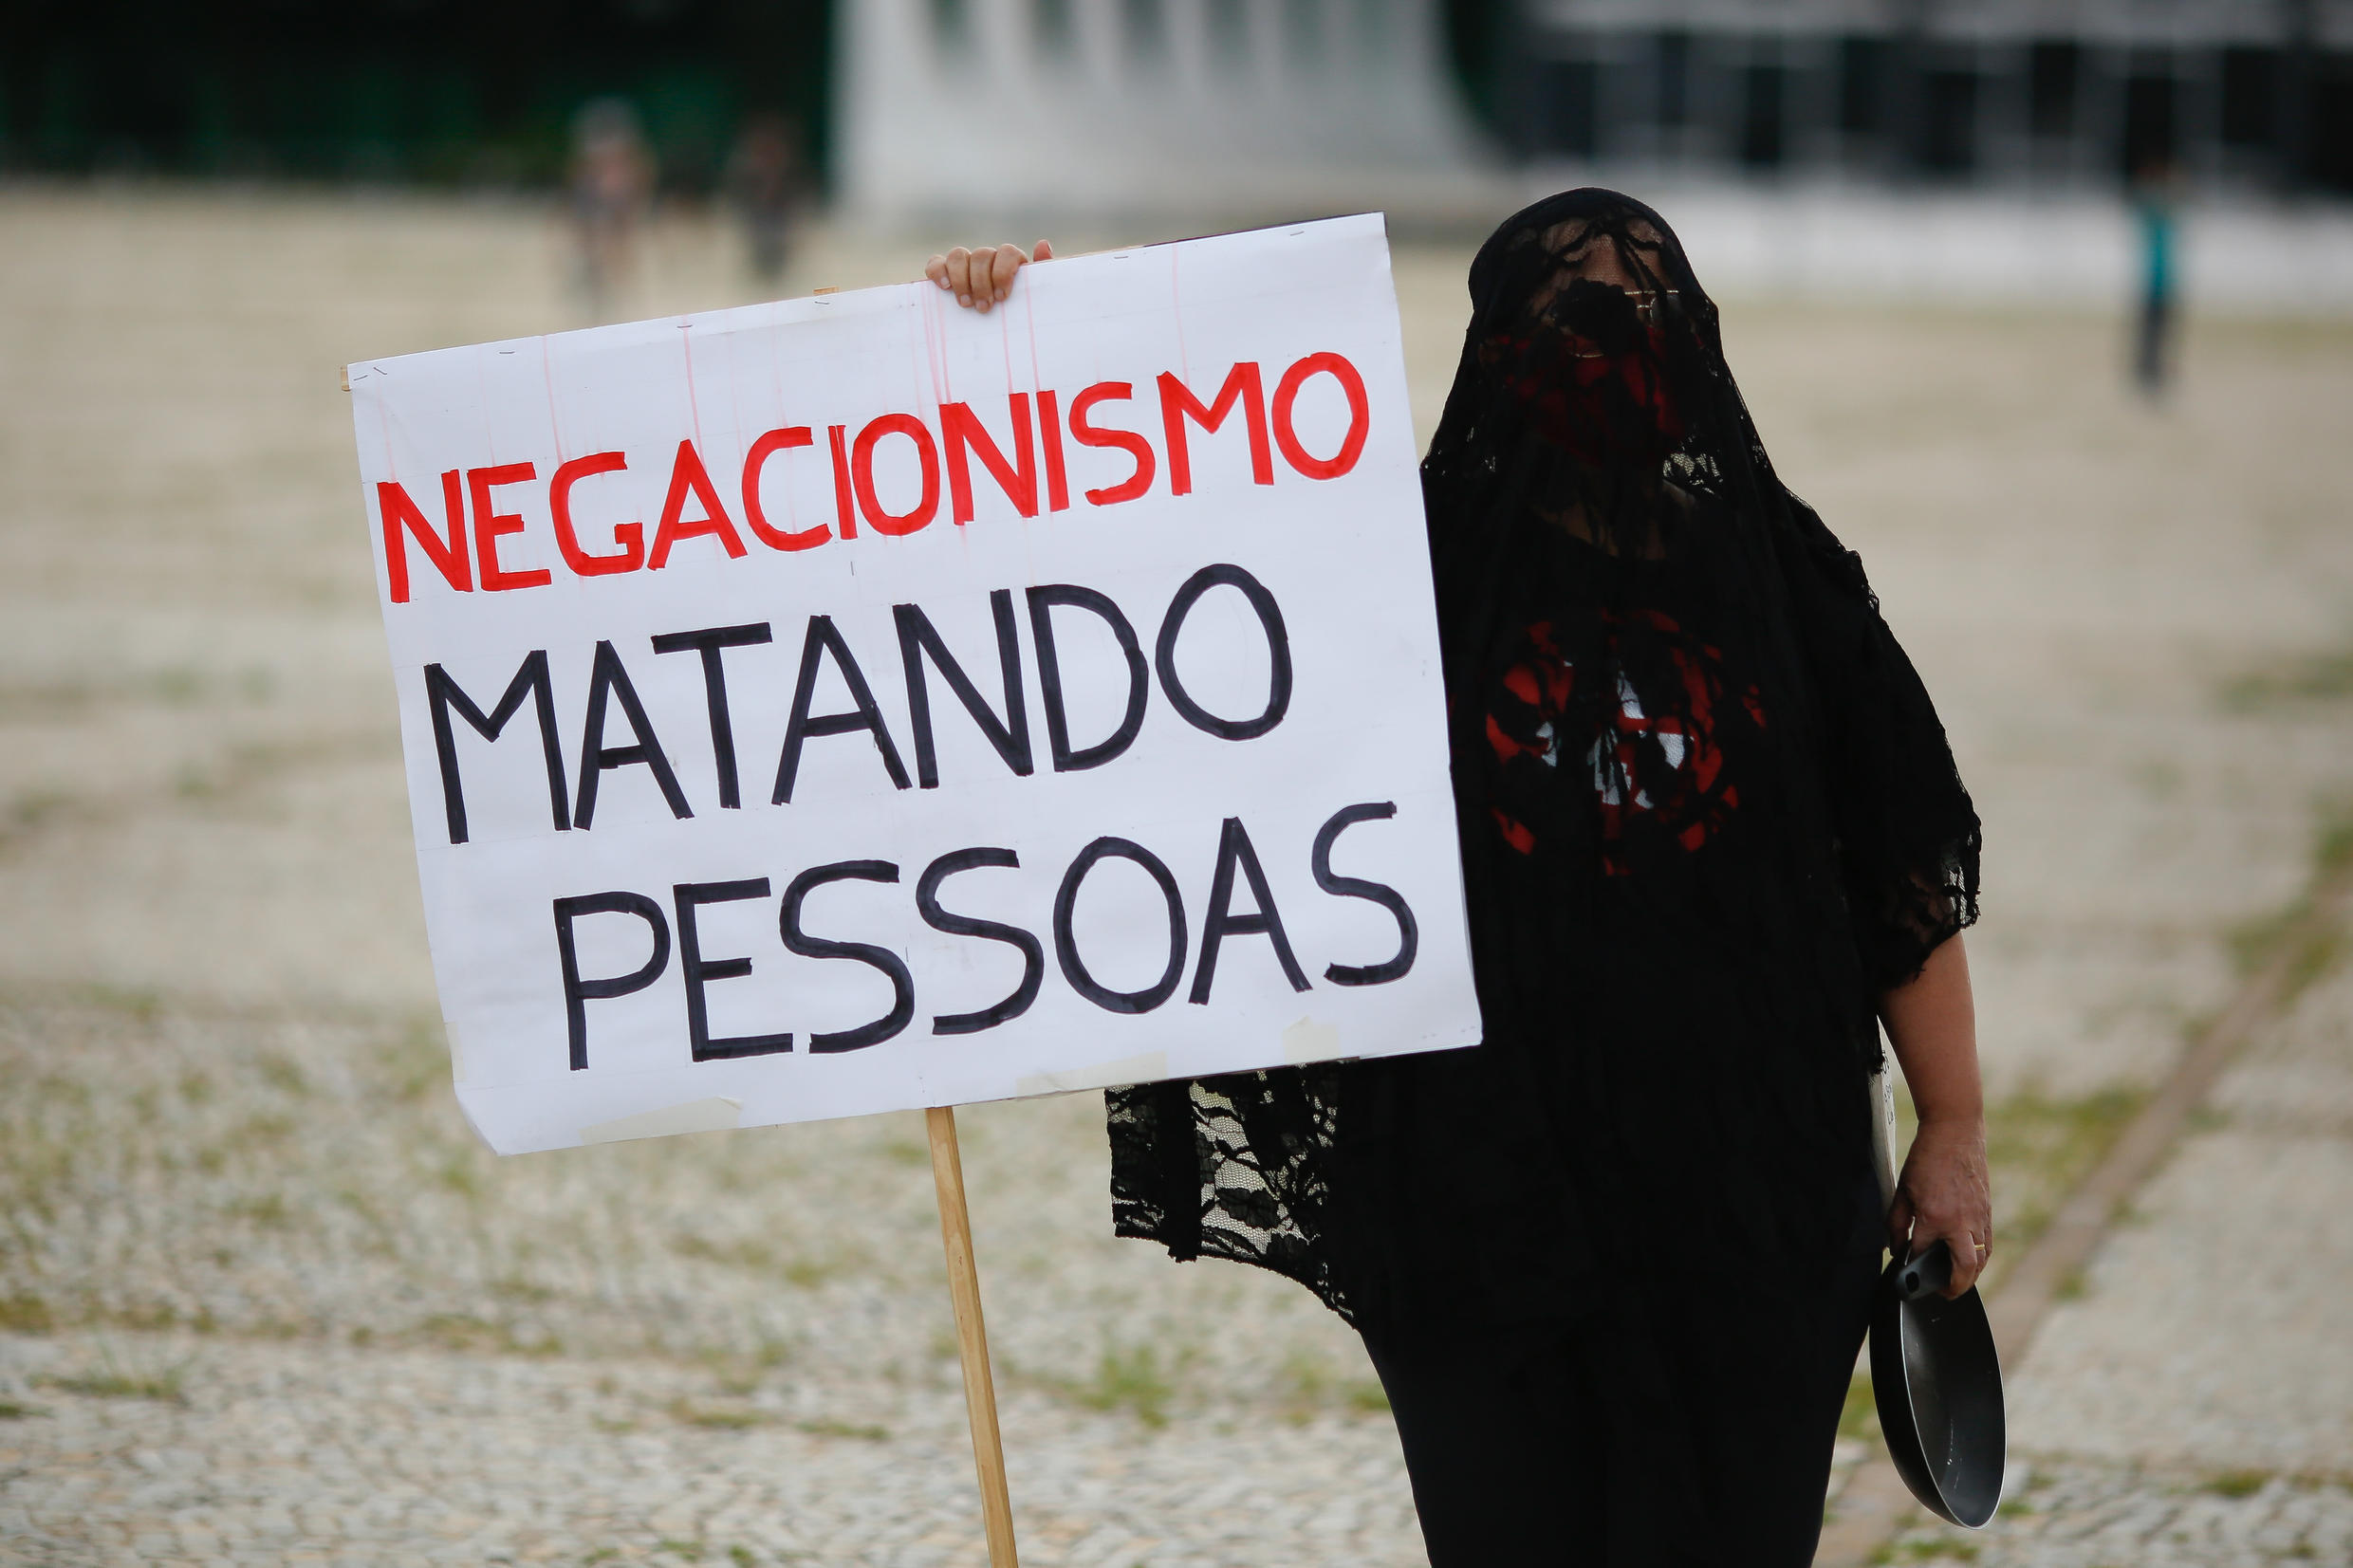 Protesters hold a protest against the measures of the President of Brazil, Jair Bolsonaro, to face the coronavirus COVID-19 pandemic, in front of the Planalto presidential palace, in Brasilia, Brazil, on January 17, 2021.